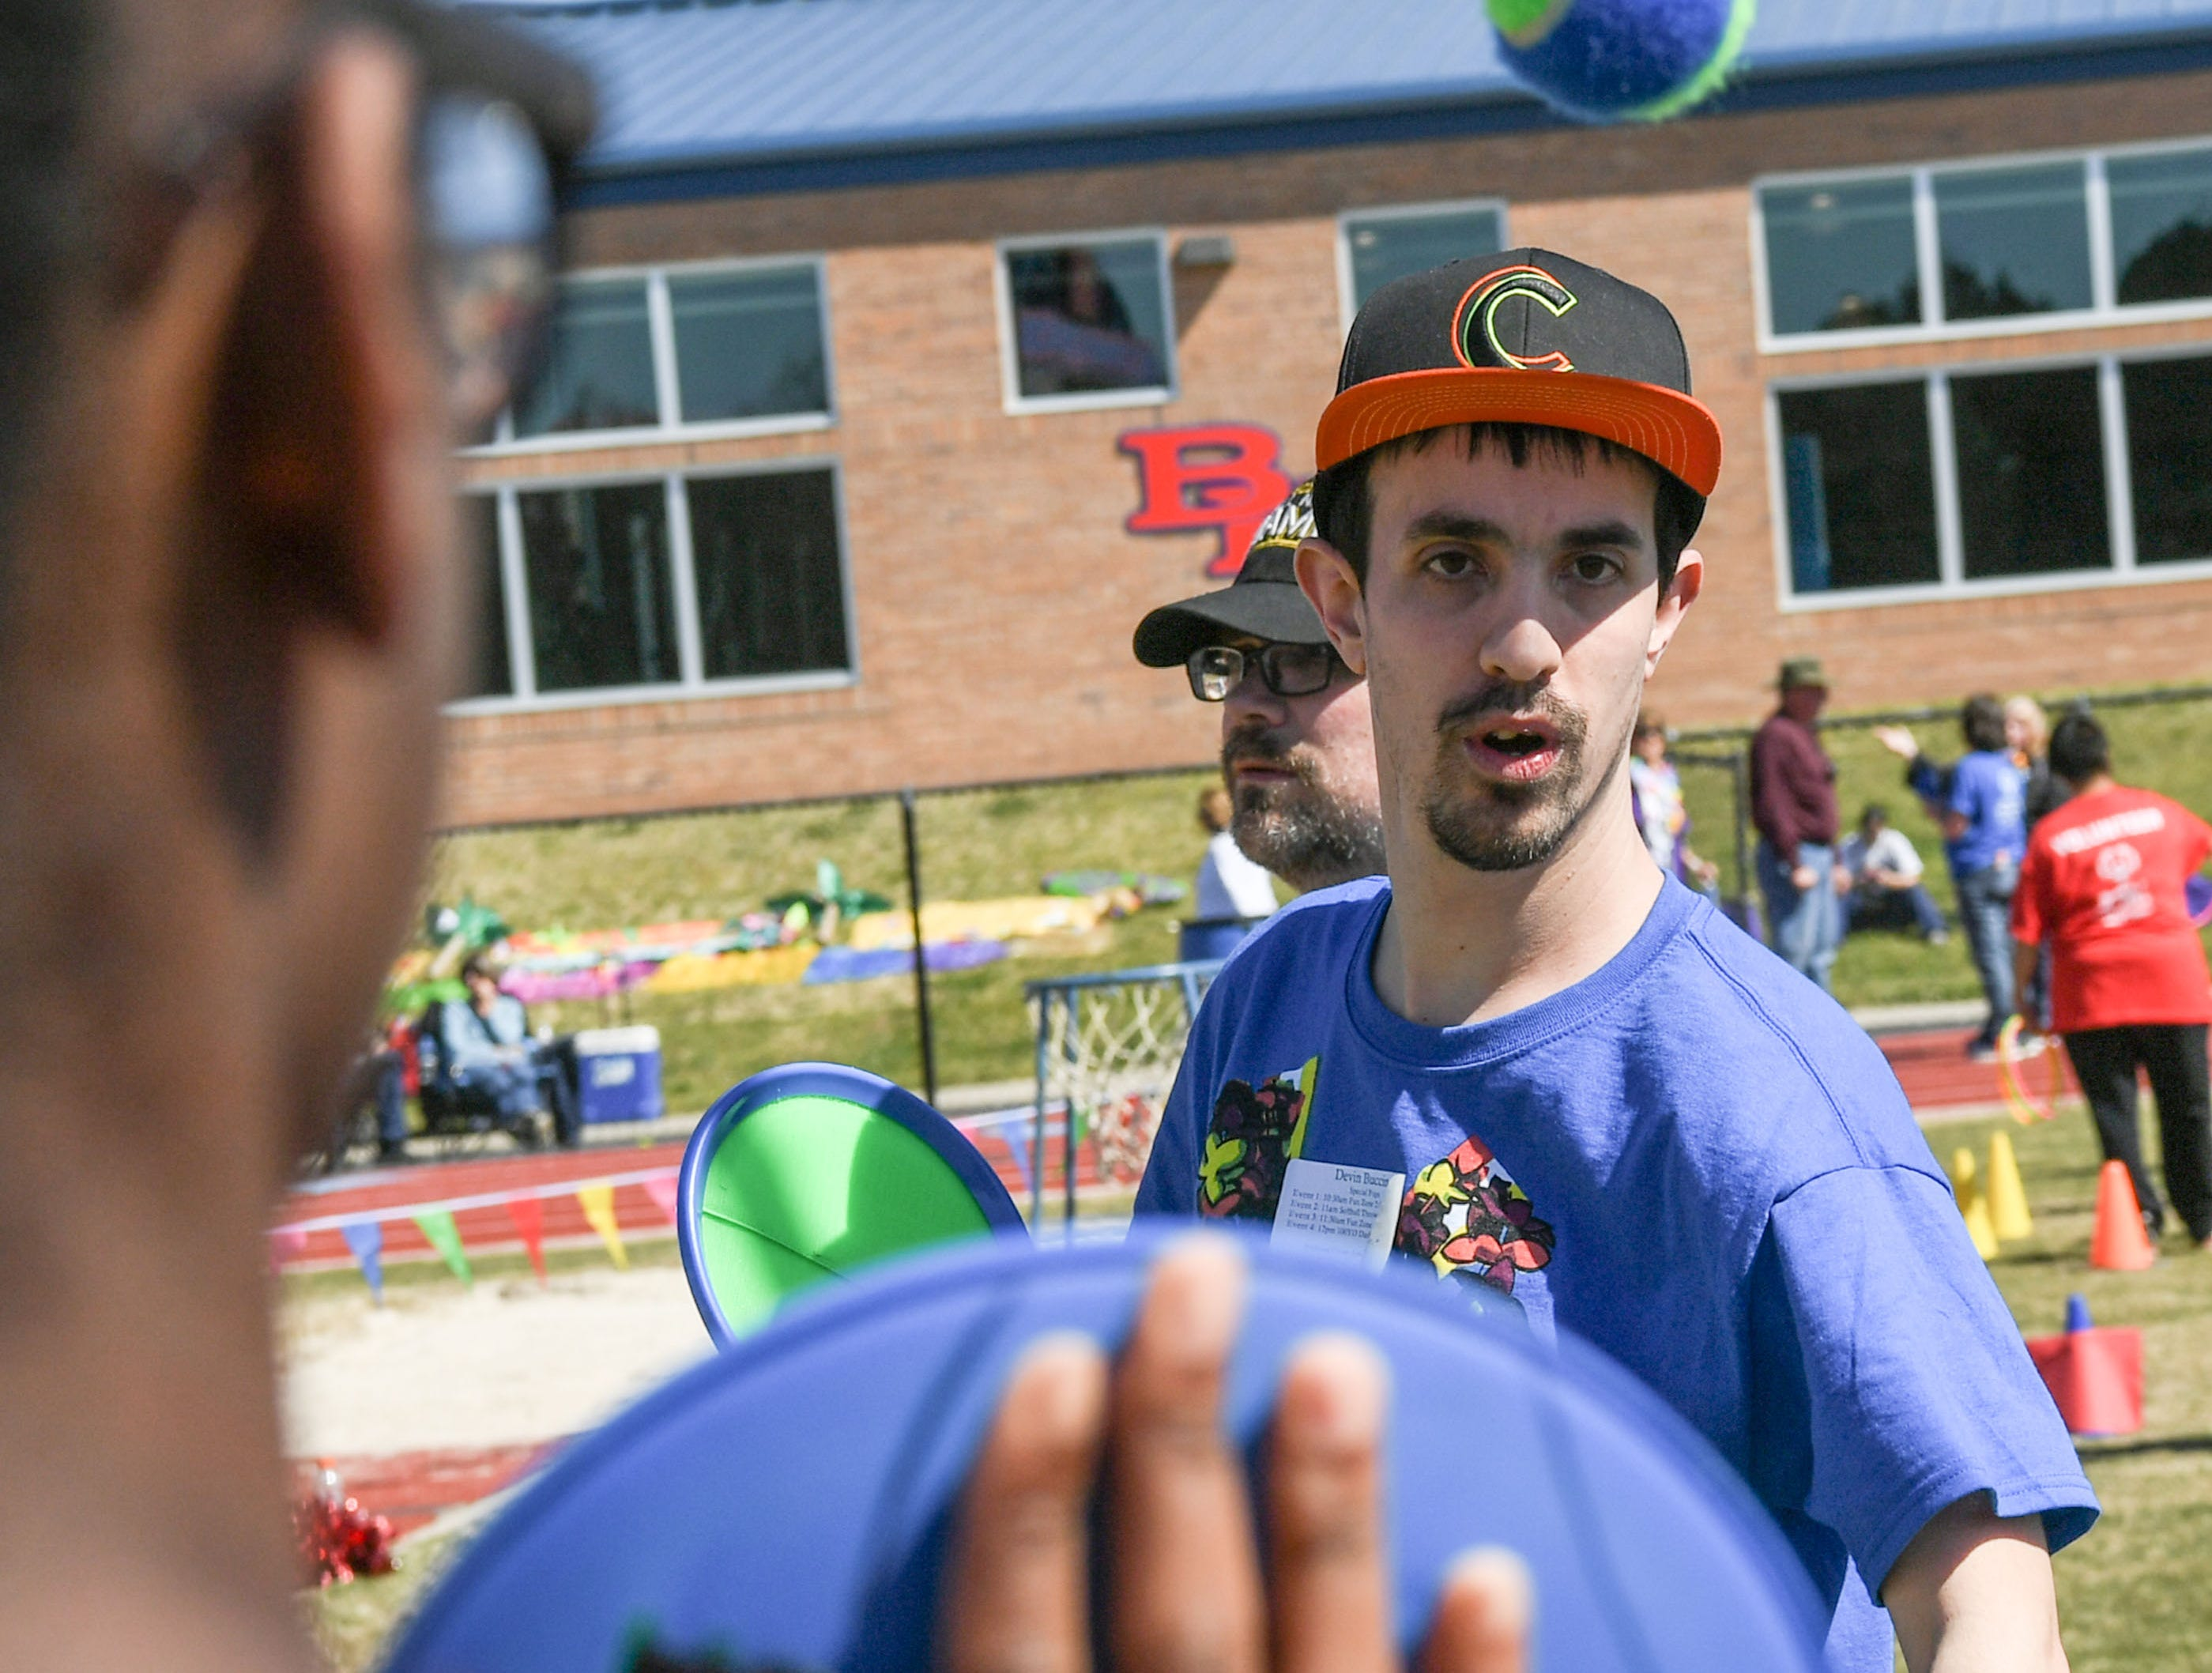 Devin Buccino throws a velcro ball in the fun zone during the Special Olympics South Carolina Area 14 Spring Games at Marlee Gambrell field at Belton-Honea Path High School Wednesday.